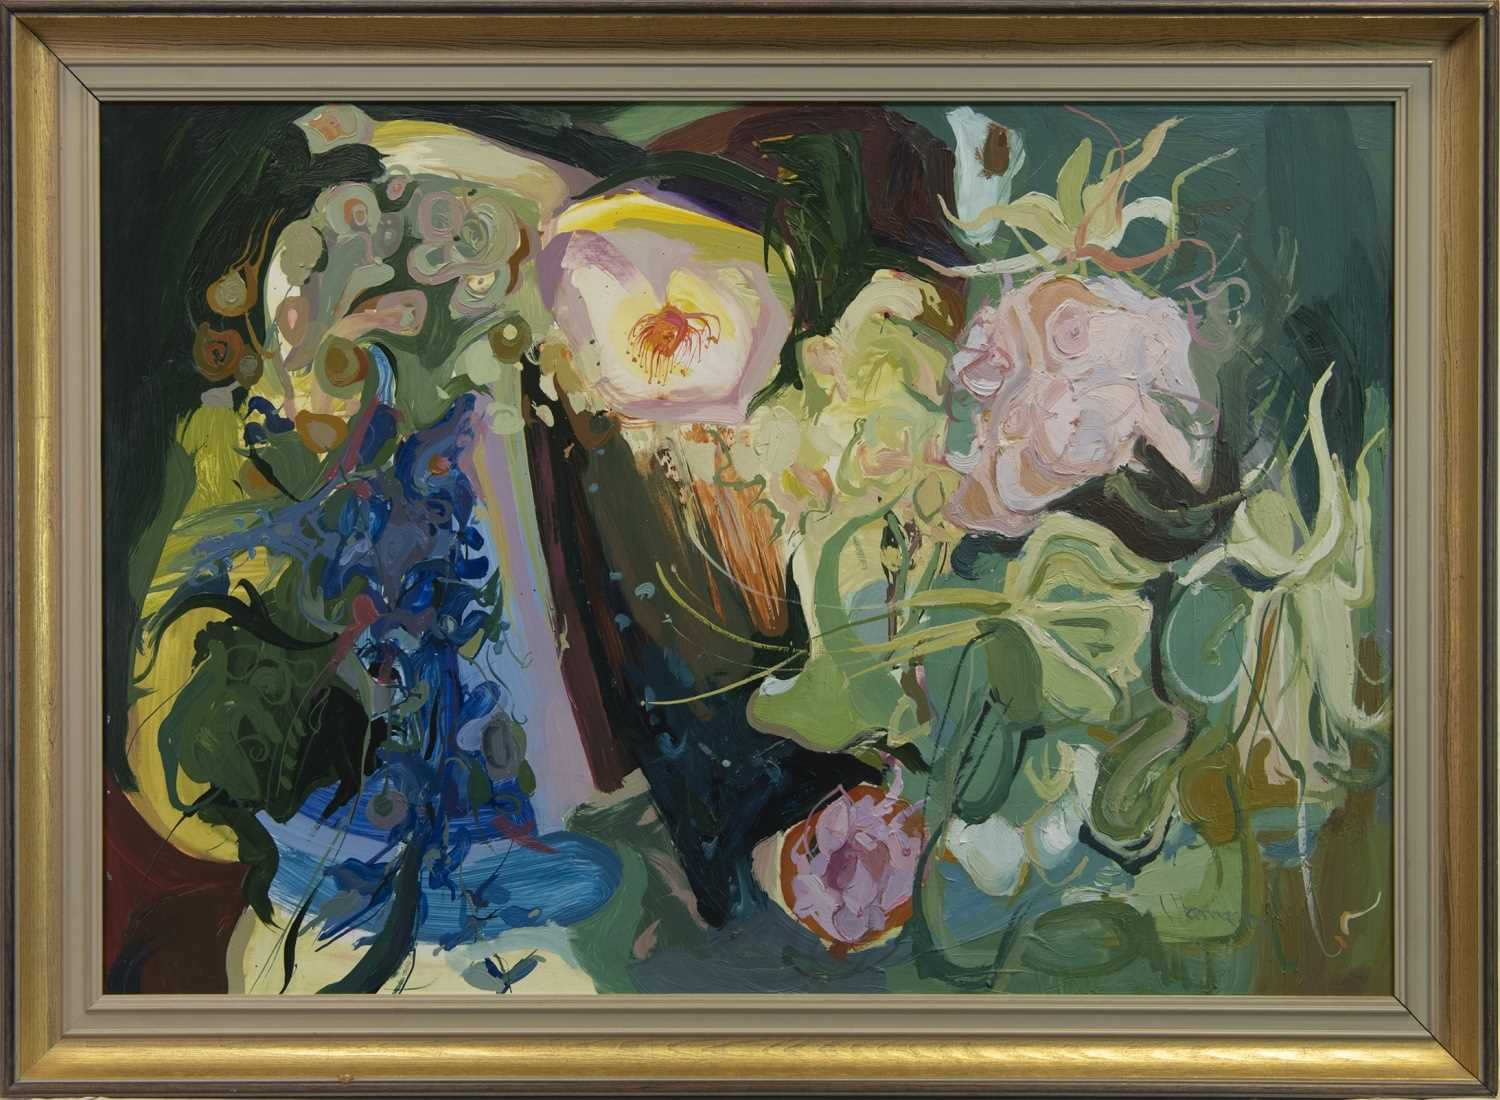 Lot 107 - STILL LIFE WITH FLOWERS, AN OIL BY JAMES HARRIGAN